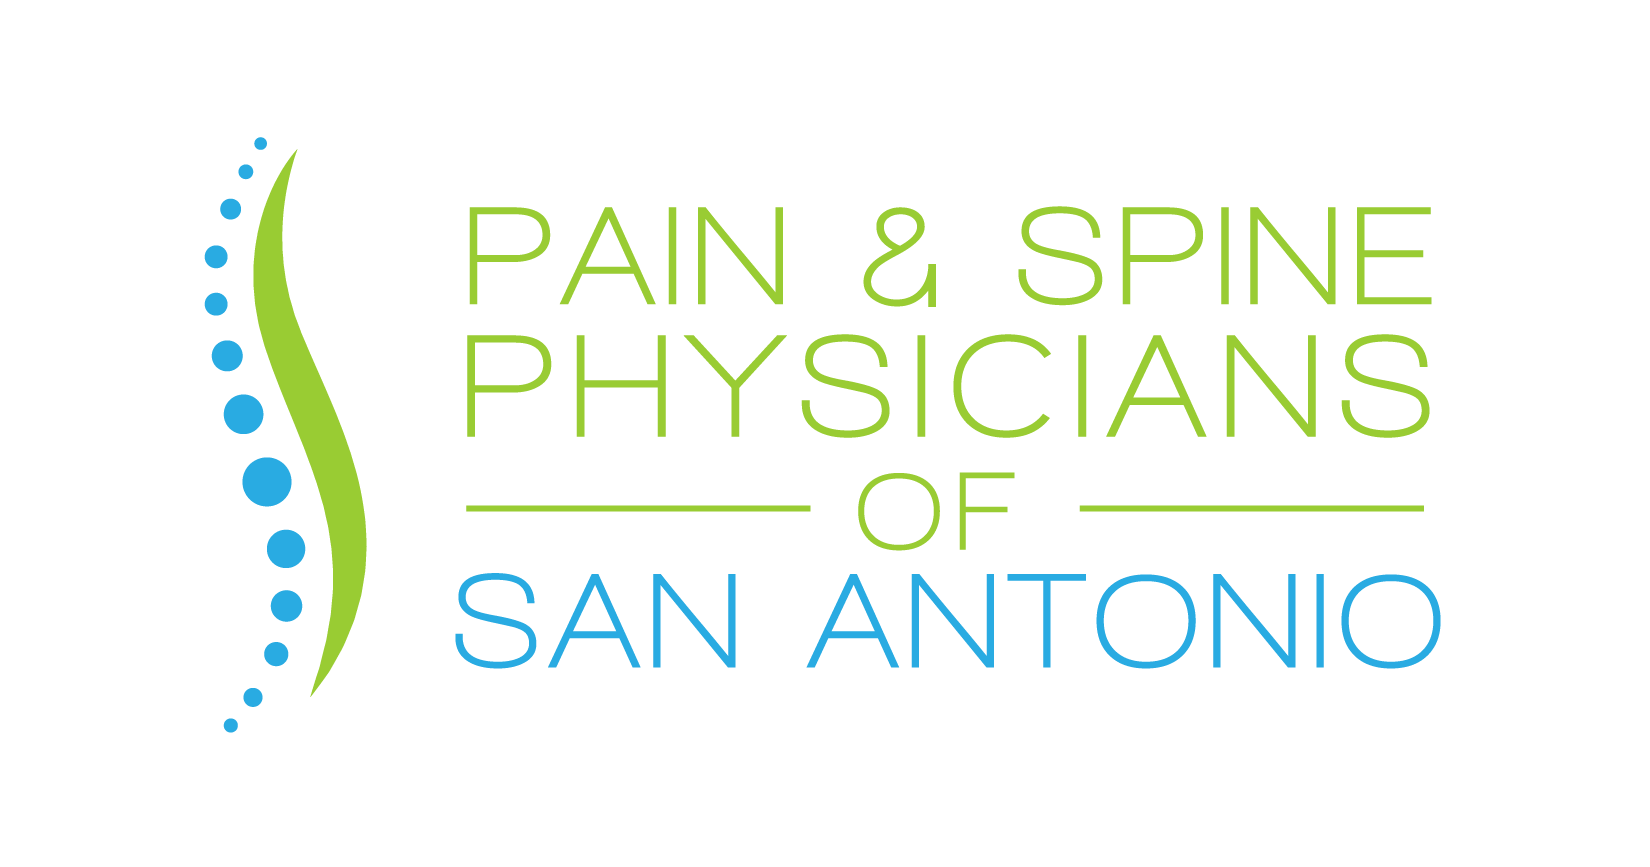 Pain & Spine Physicians of San Antonio